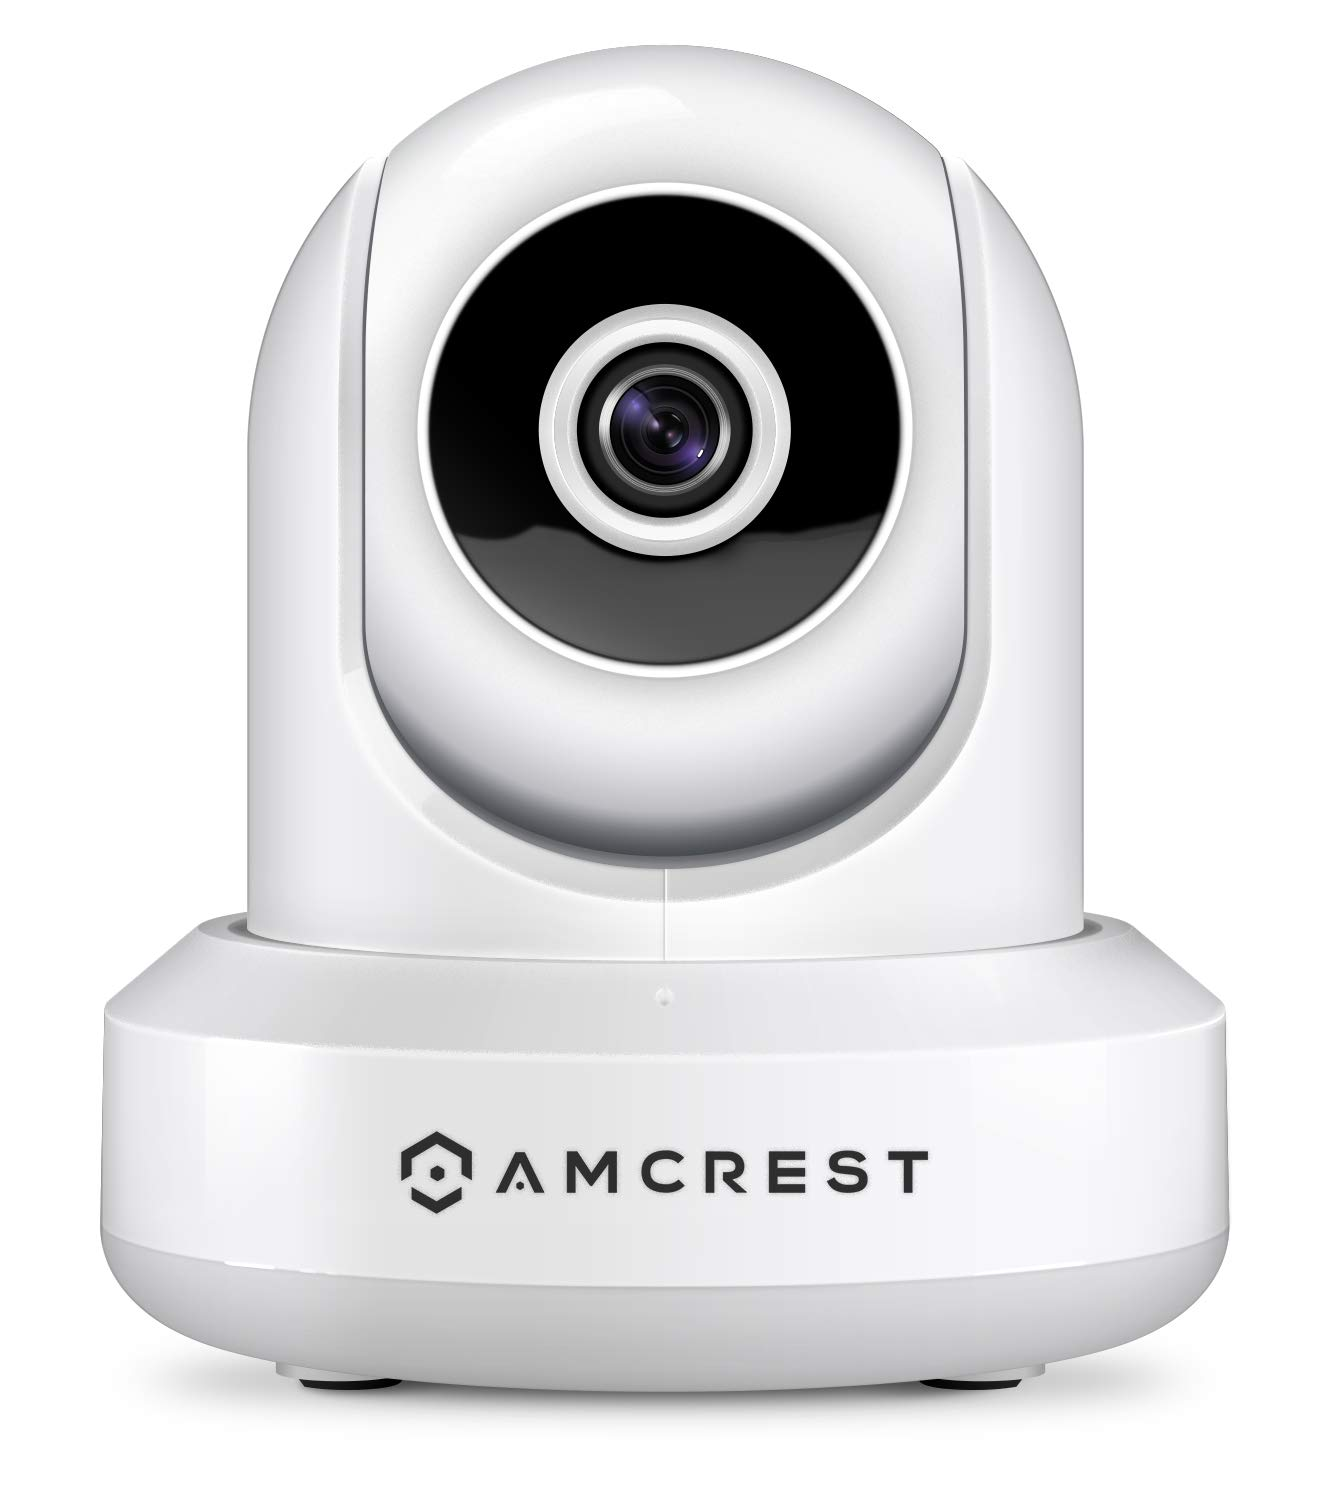 Amcrest 1080P WiFi Security Camera 2MP Indoor Pan/Tilt Wireless IP Camera, IP2M-841W (White) by Amcrest